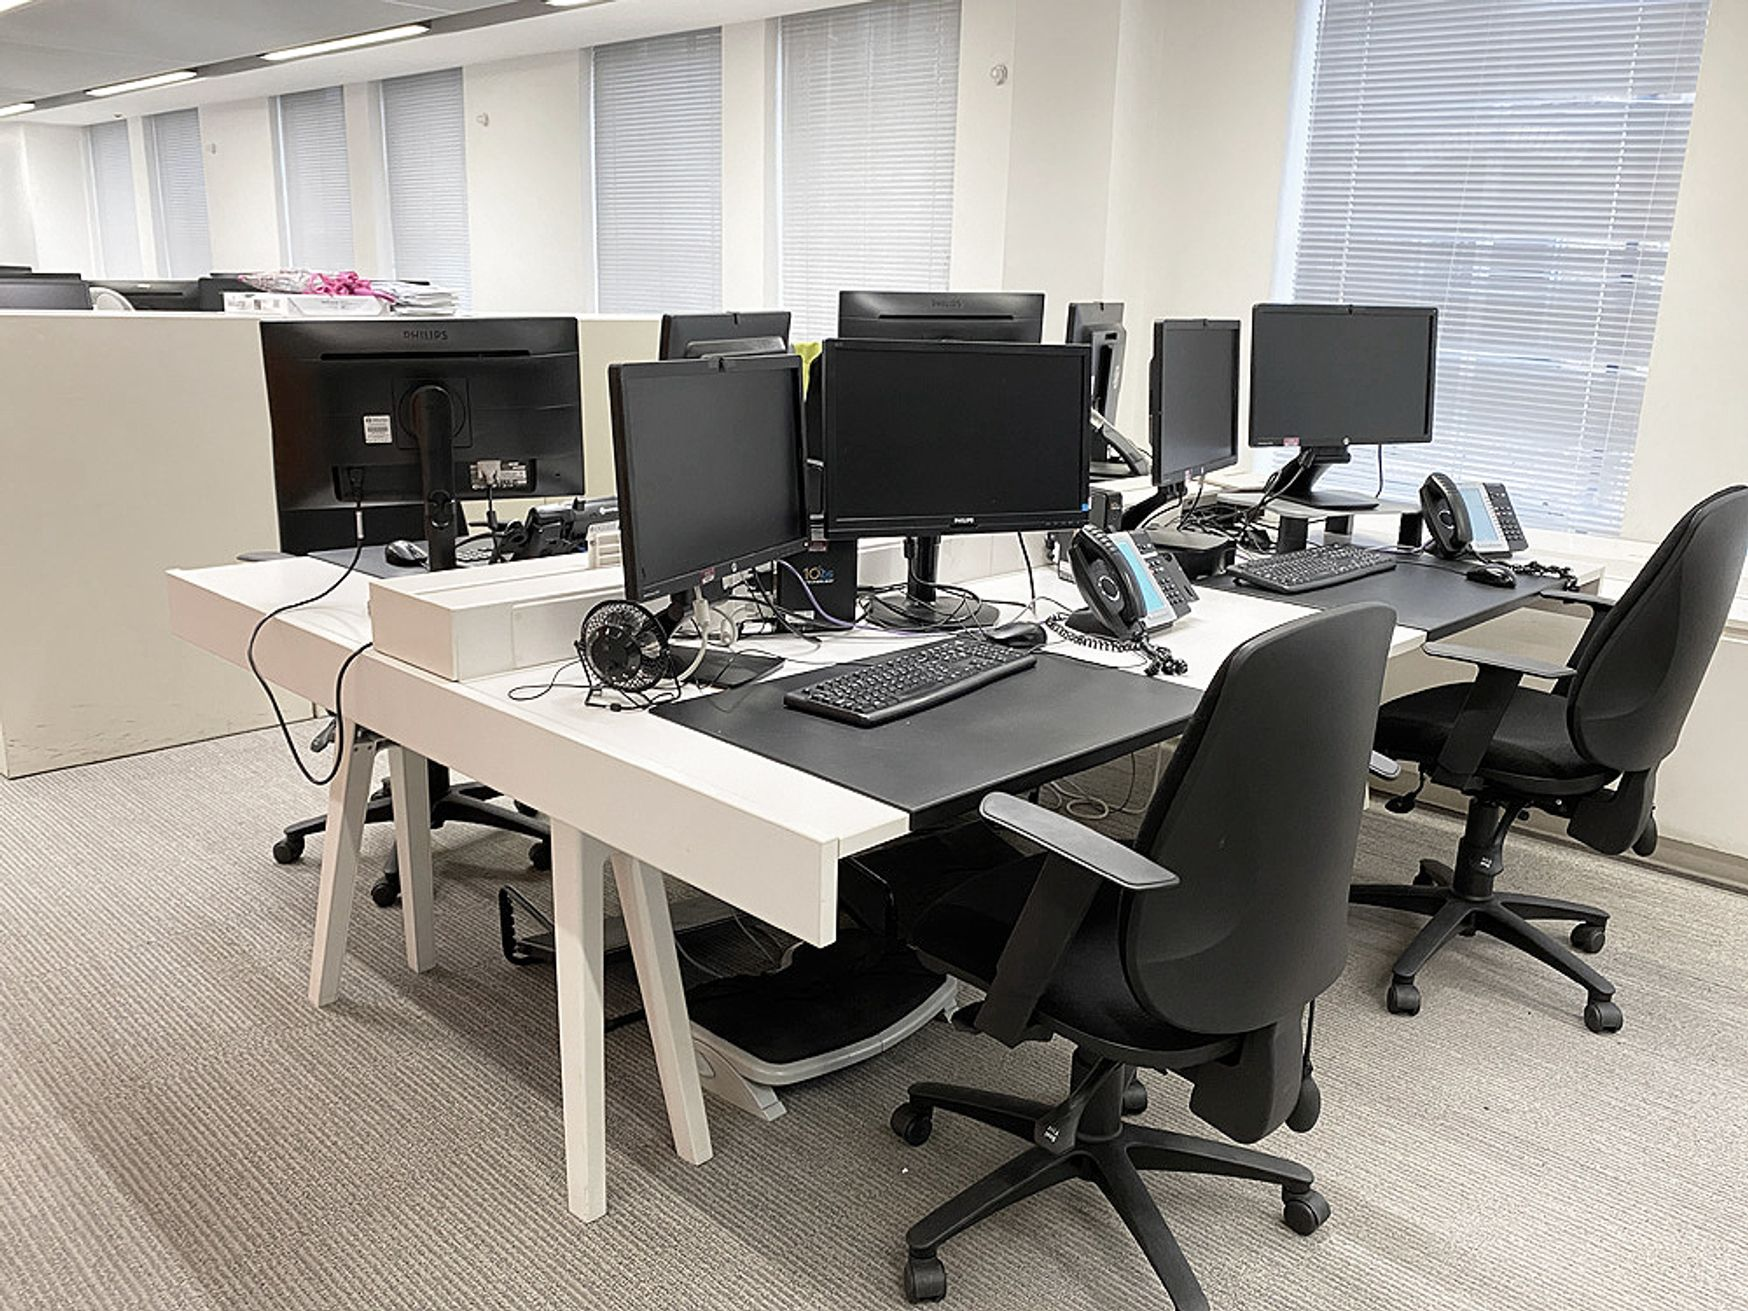 Used Vitra 'Joyn' desks configured as 56 x 4-person benches.